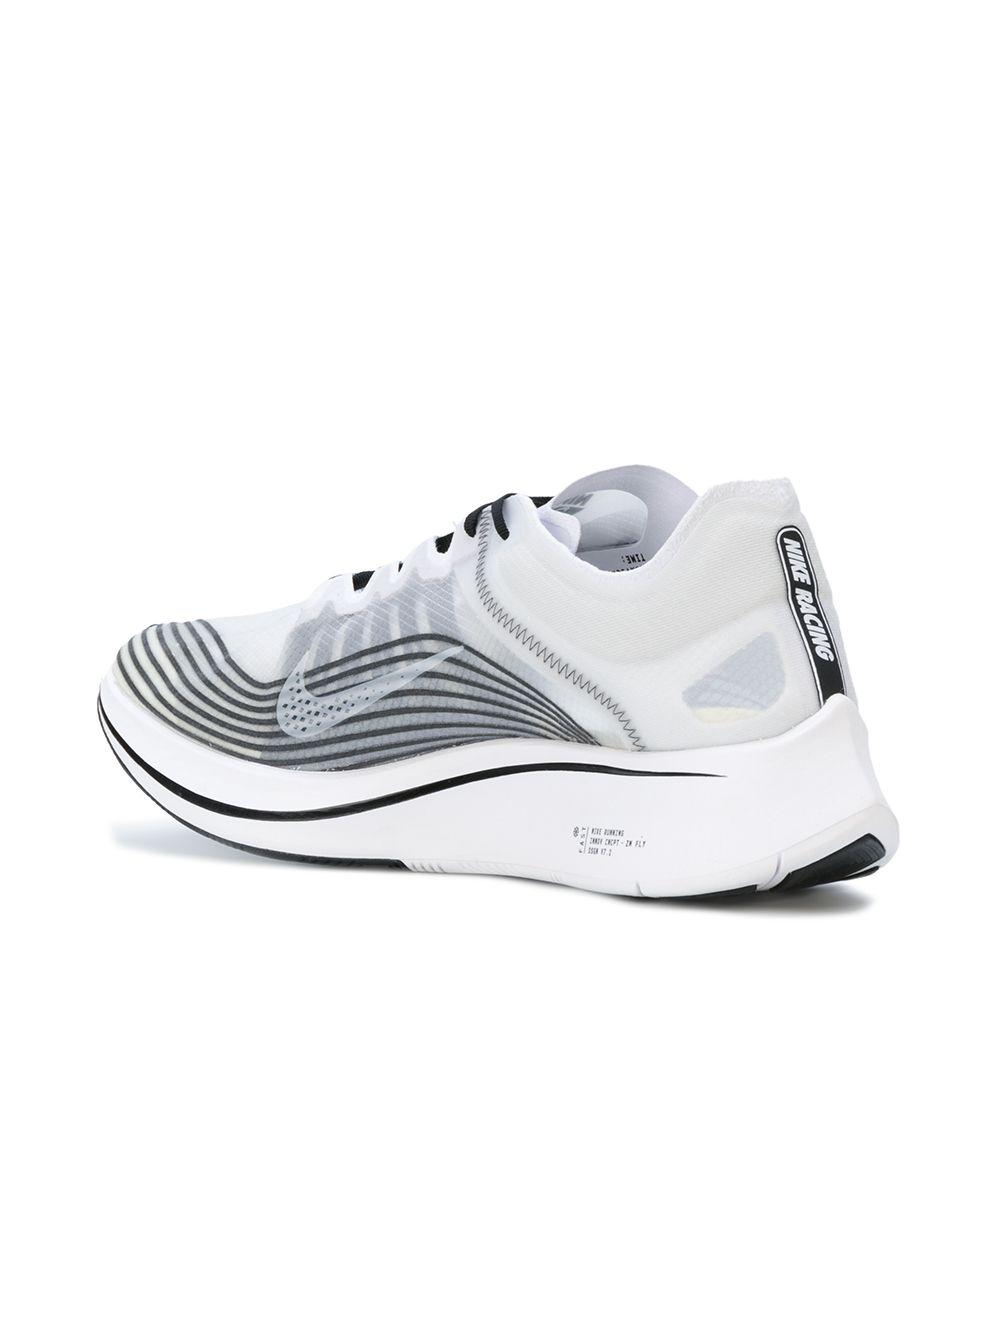 bb0b2f0033860 Nike - White Lab Zoom Fly Sp Sneakers - Lyst. View fullscreen